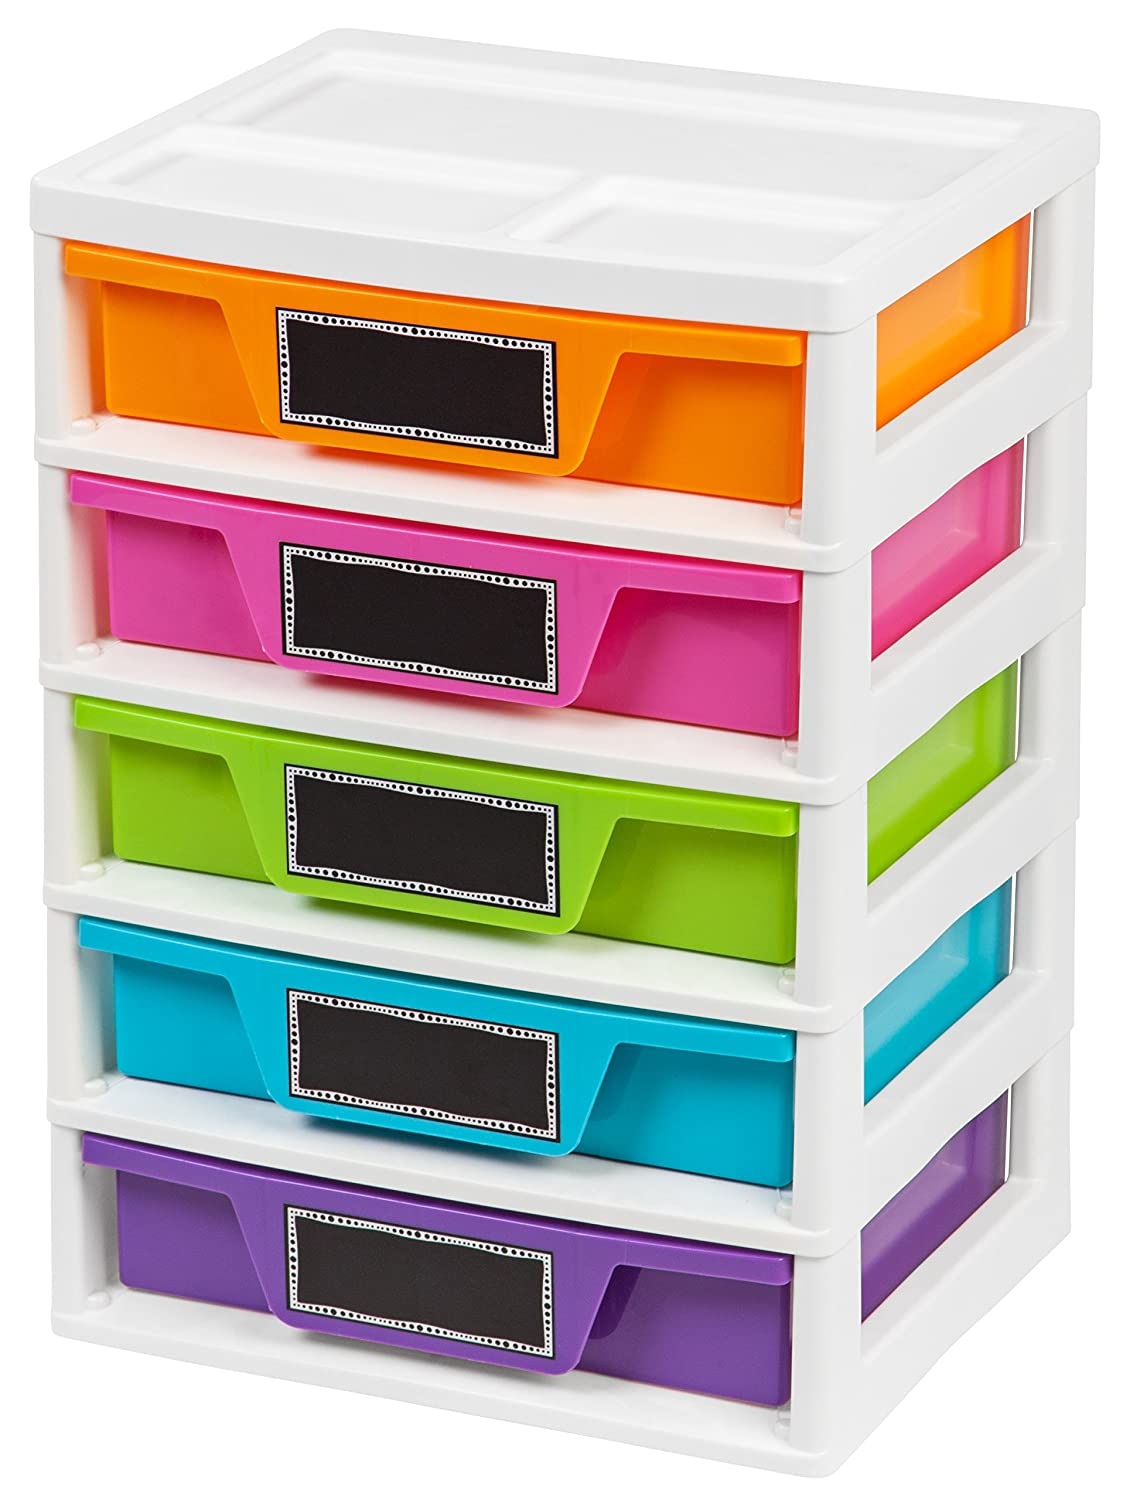 IRIS USA, Inc. PJD-305 5 Drawer Storage & Organizer Chest, Assorted Colors, Girl, Pastel